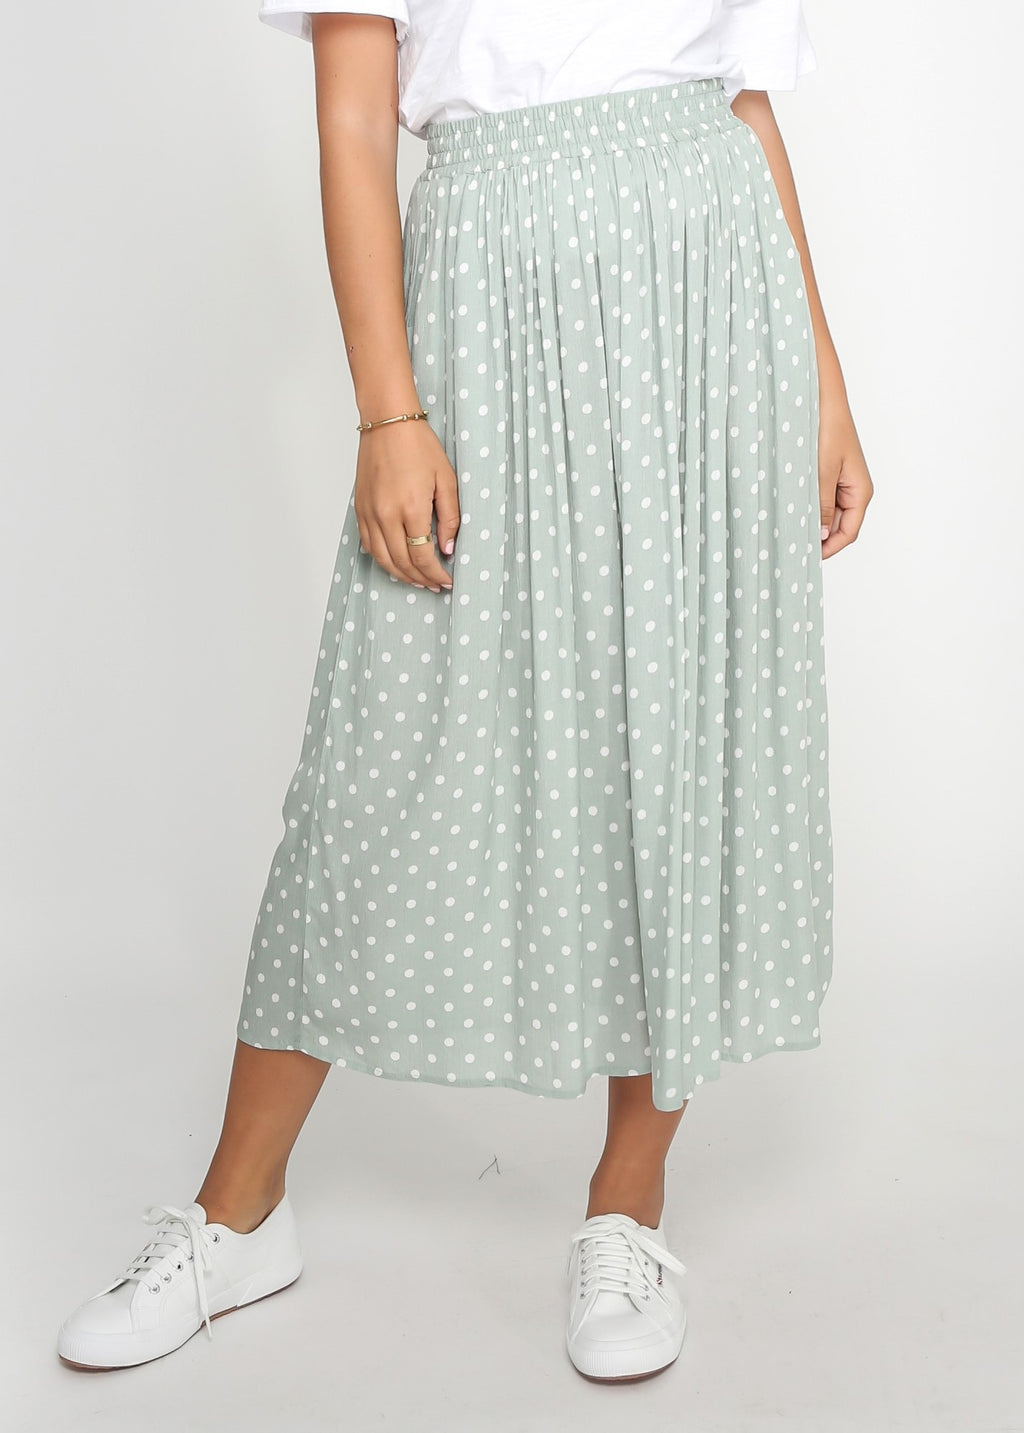 JEM SKIRT - SAGE POLKA DOT